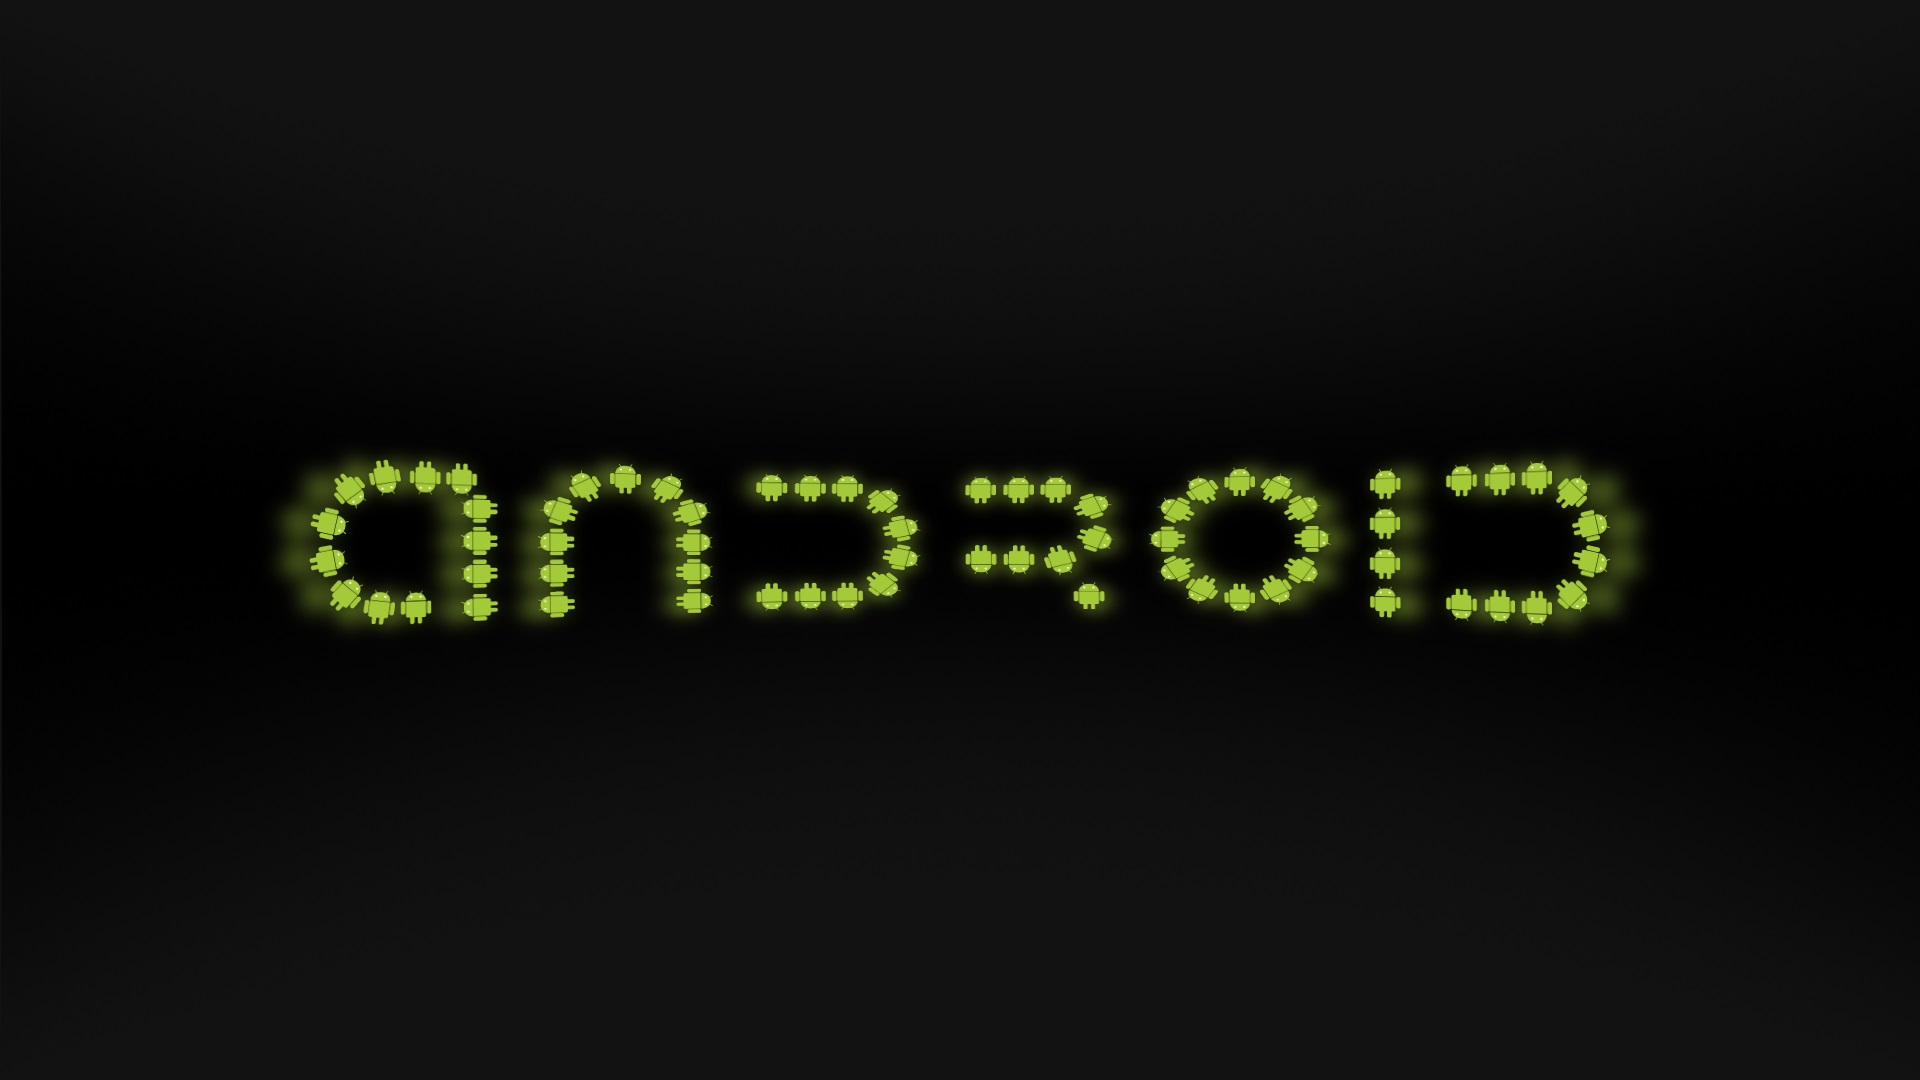 Dark Android Os Hd Images